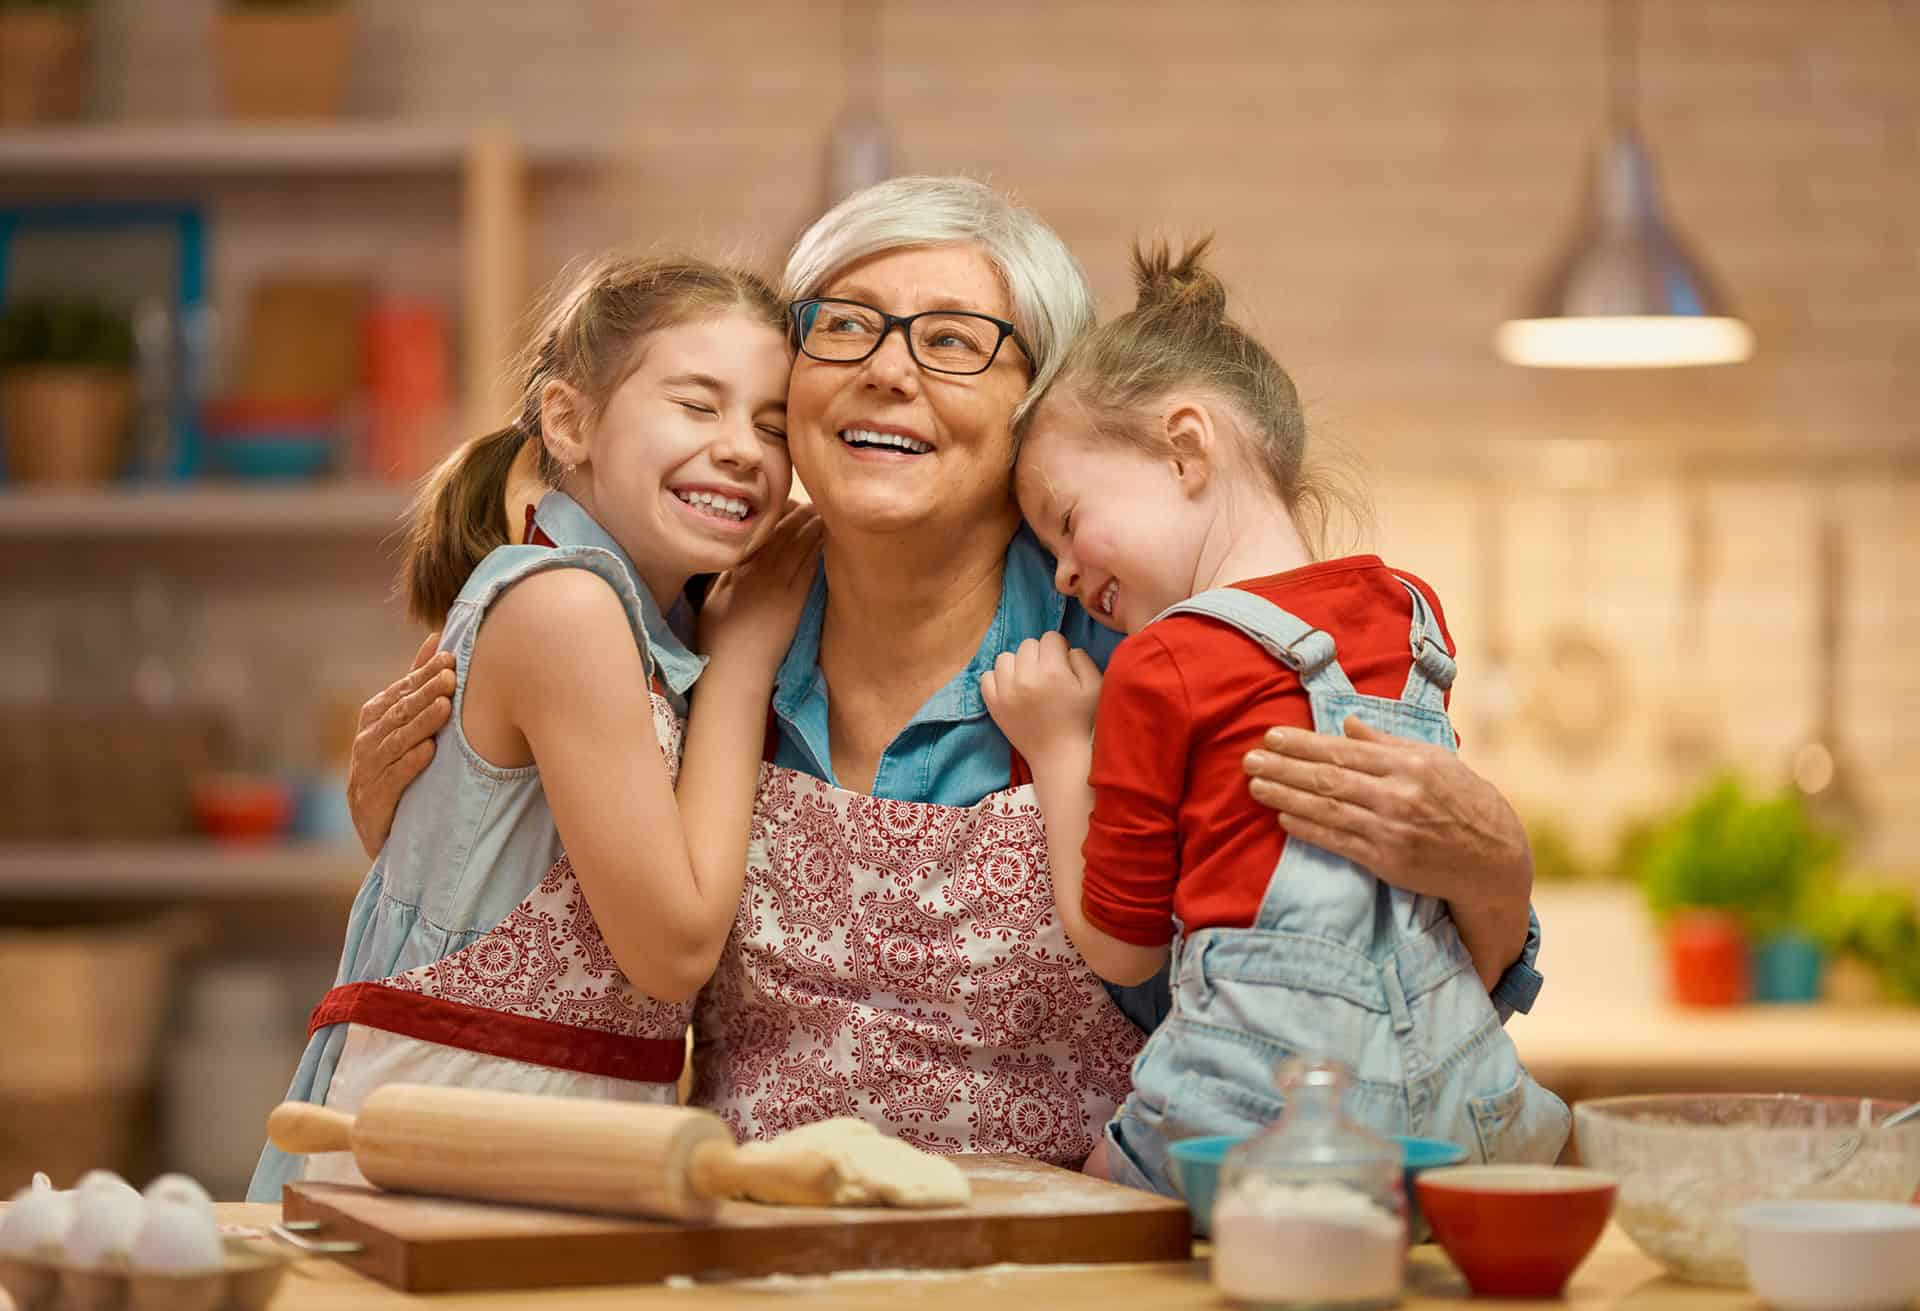 Grandmother with granddaughters baking in the kitchen hugging and smiling